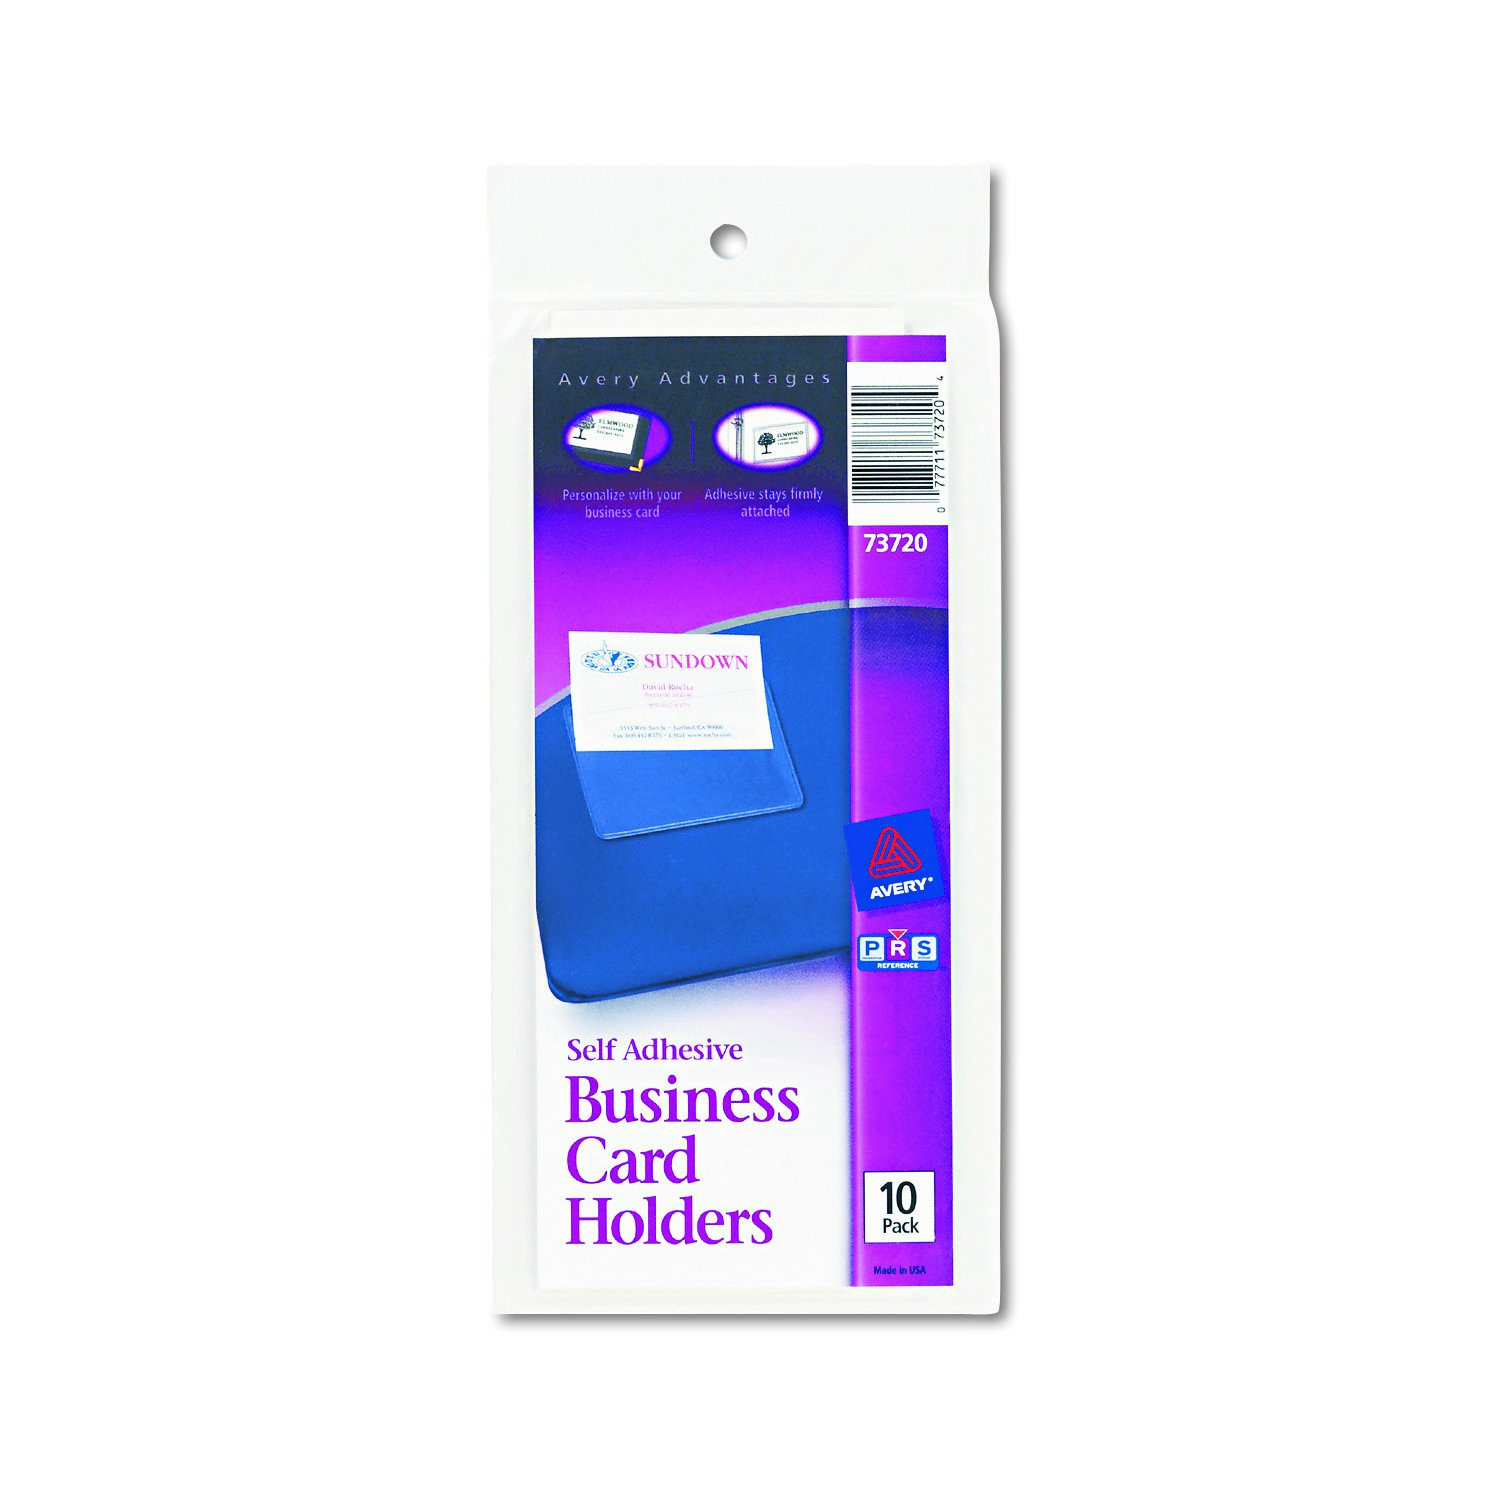 Amazon.com : Avery Self-Adhesive Top-Load Business Card Holders ...